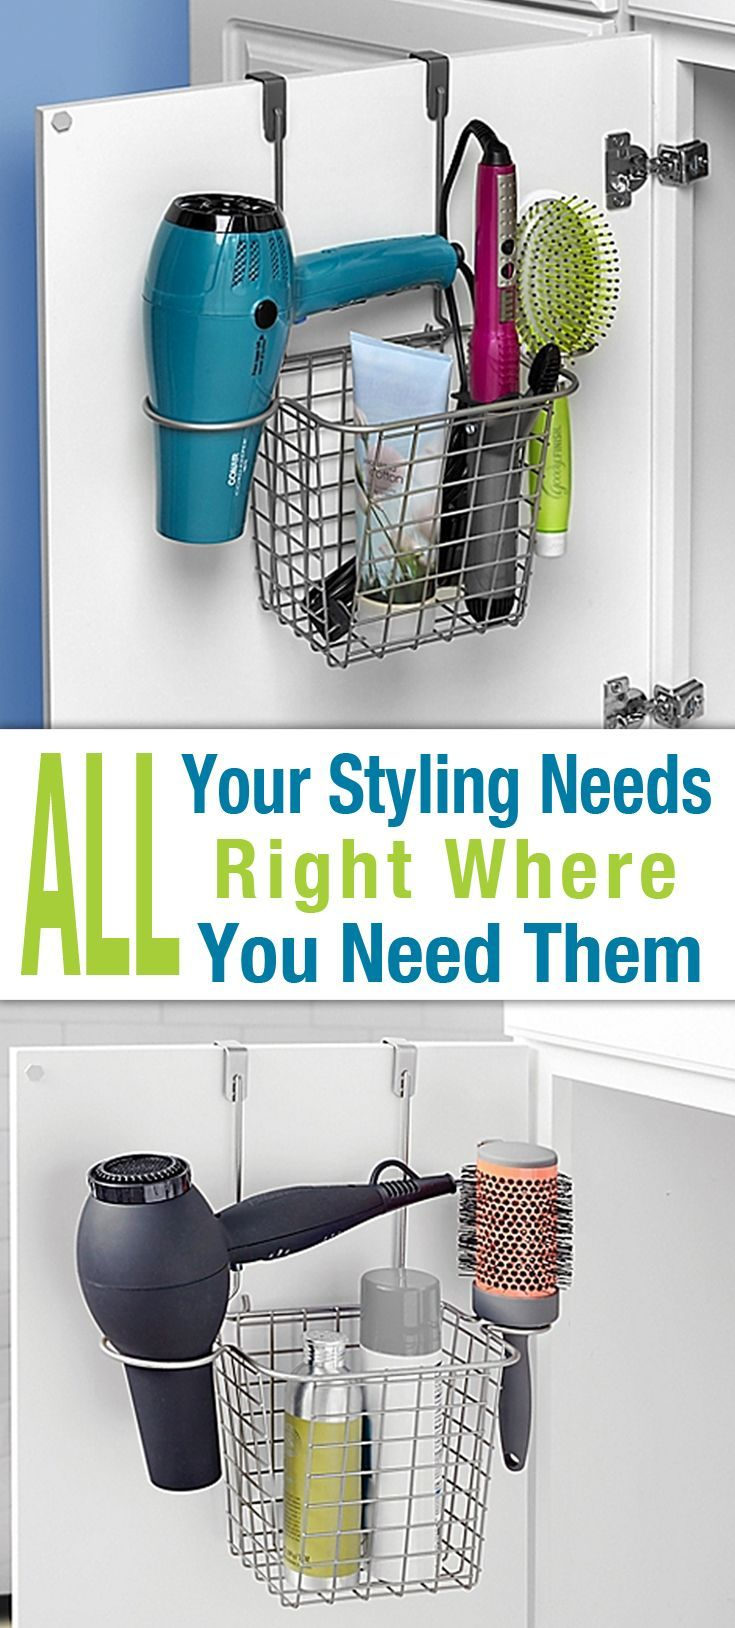 Organize Your Styling Products And Accessories With Spectrum S Grid Over The Door Styling Caddy Clutter Control Home Organization Hacks Clutter Organization